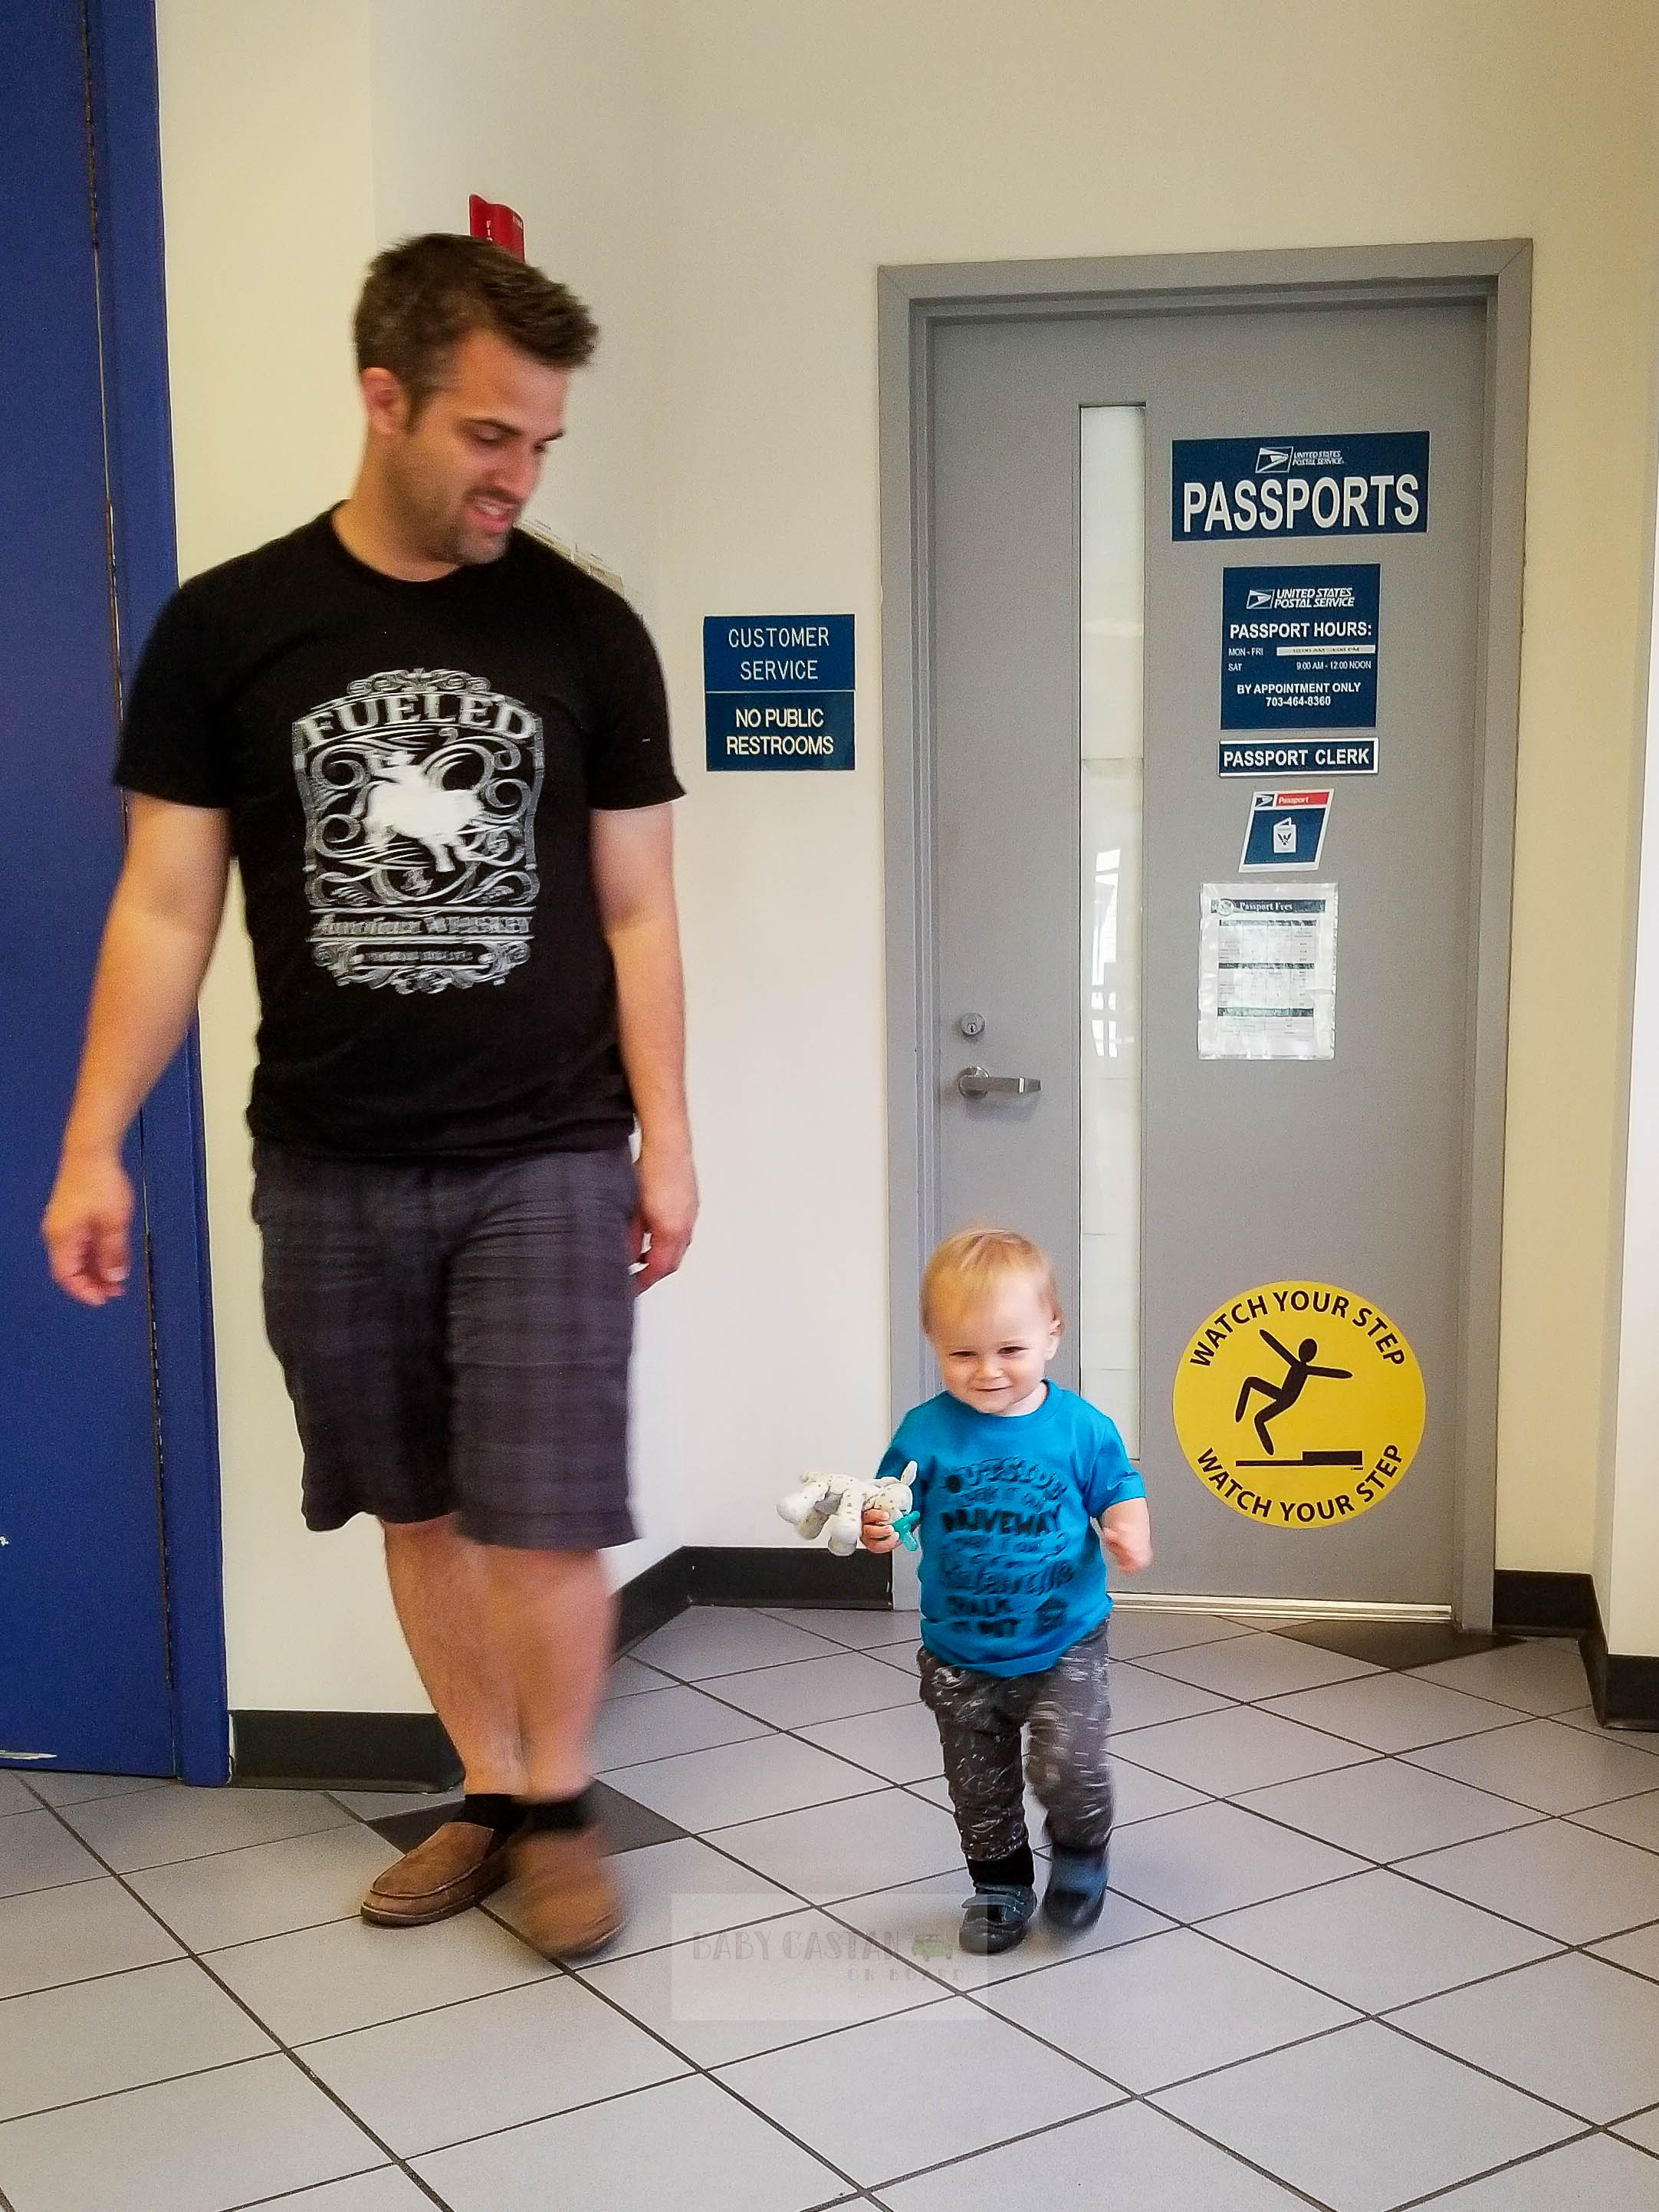 If you want to travel internationally with your baby or toddler you will need a passport. Check out these tips for applying for a passport for a baby.